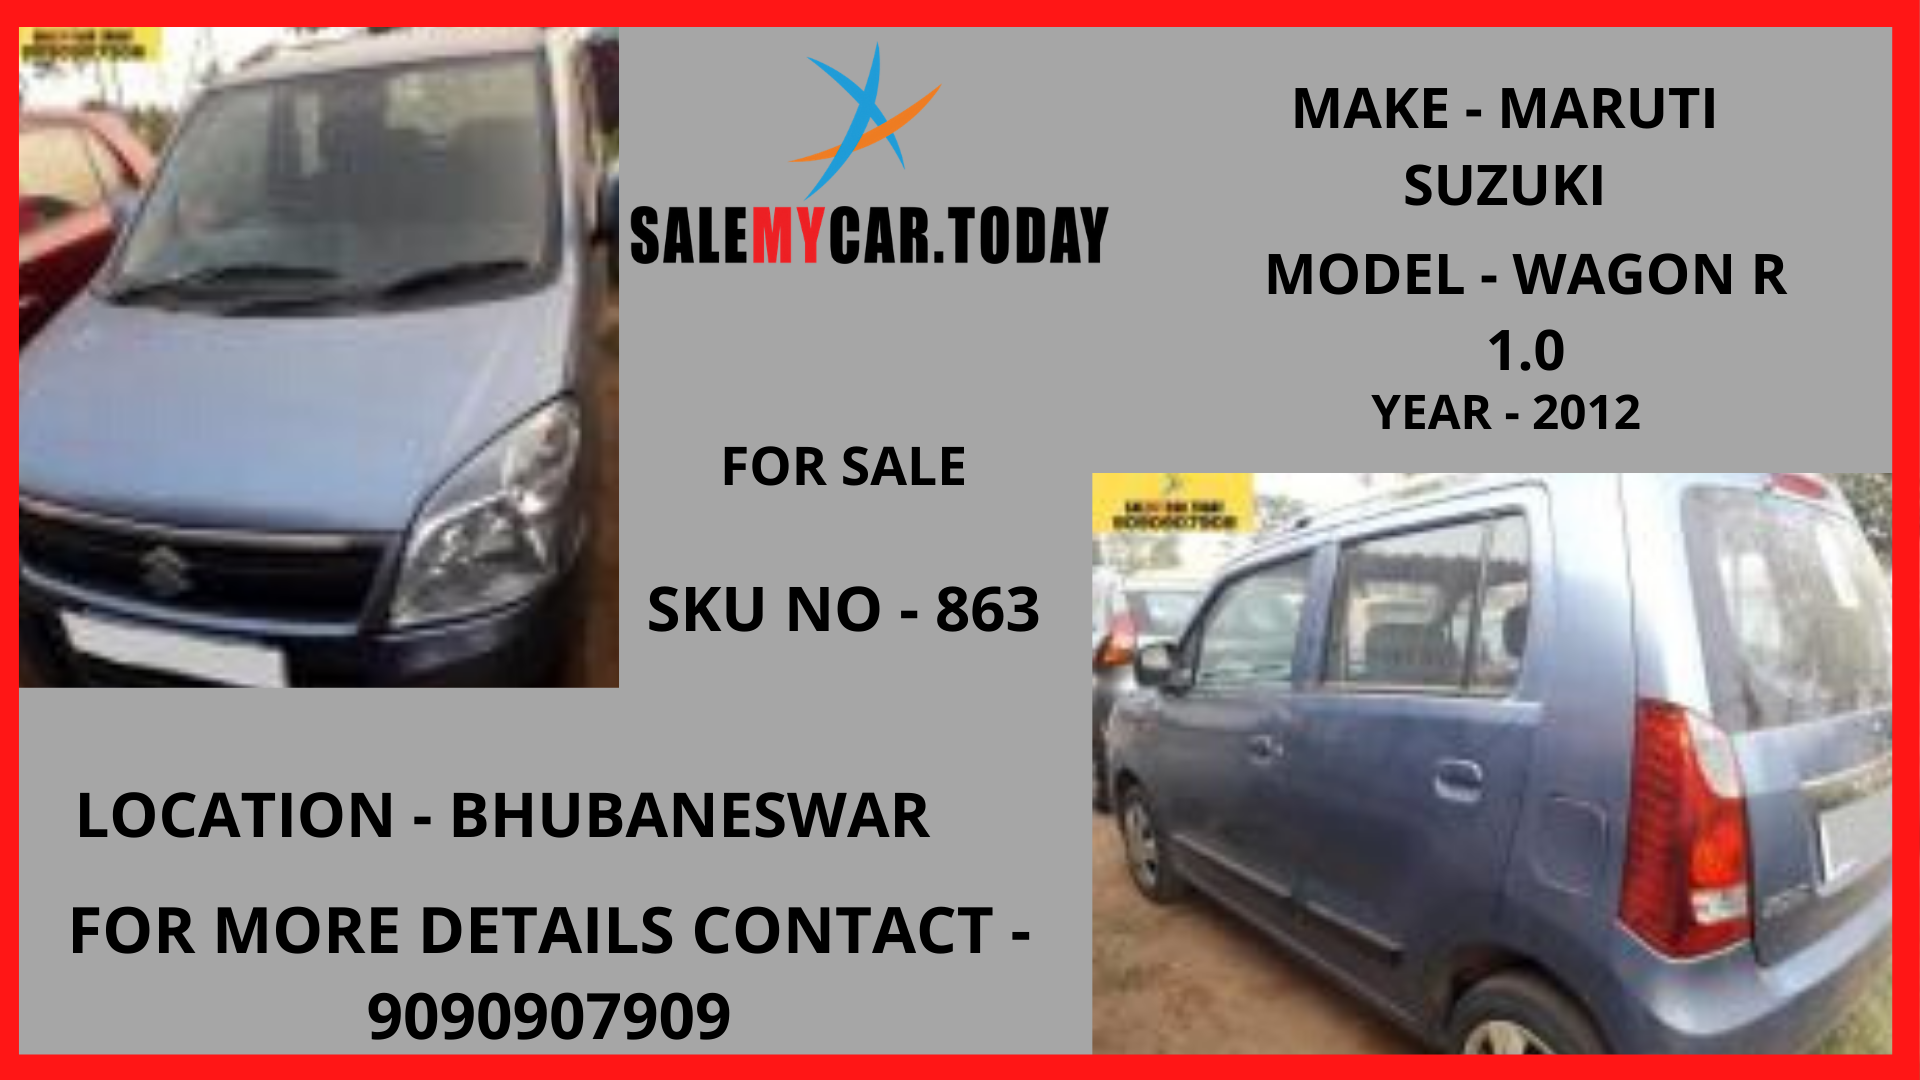 SECOND HAND MARUTI SUZUKI WAGON R 1.0 FOR SALE IN